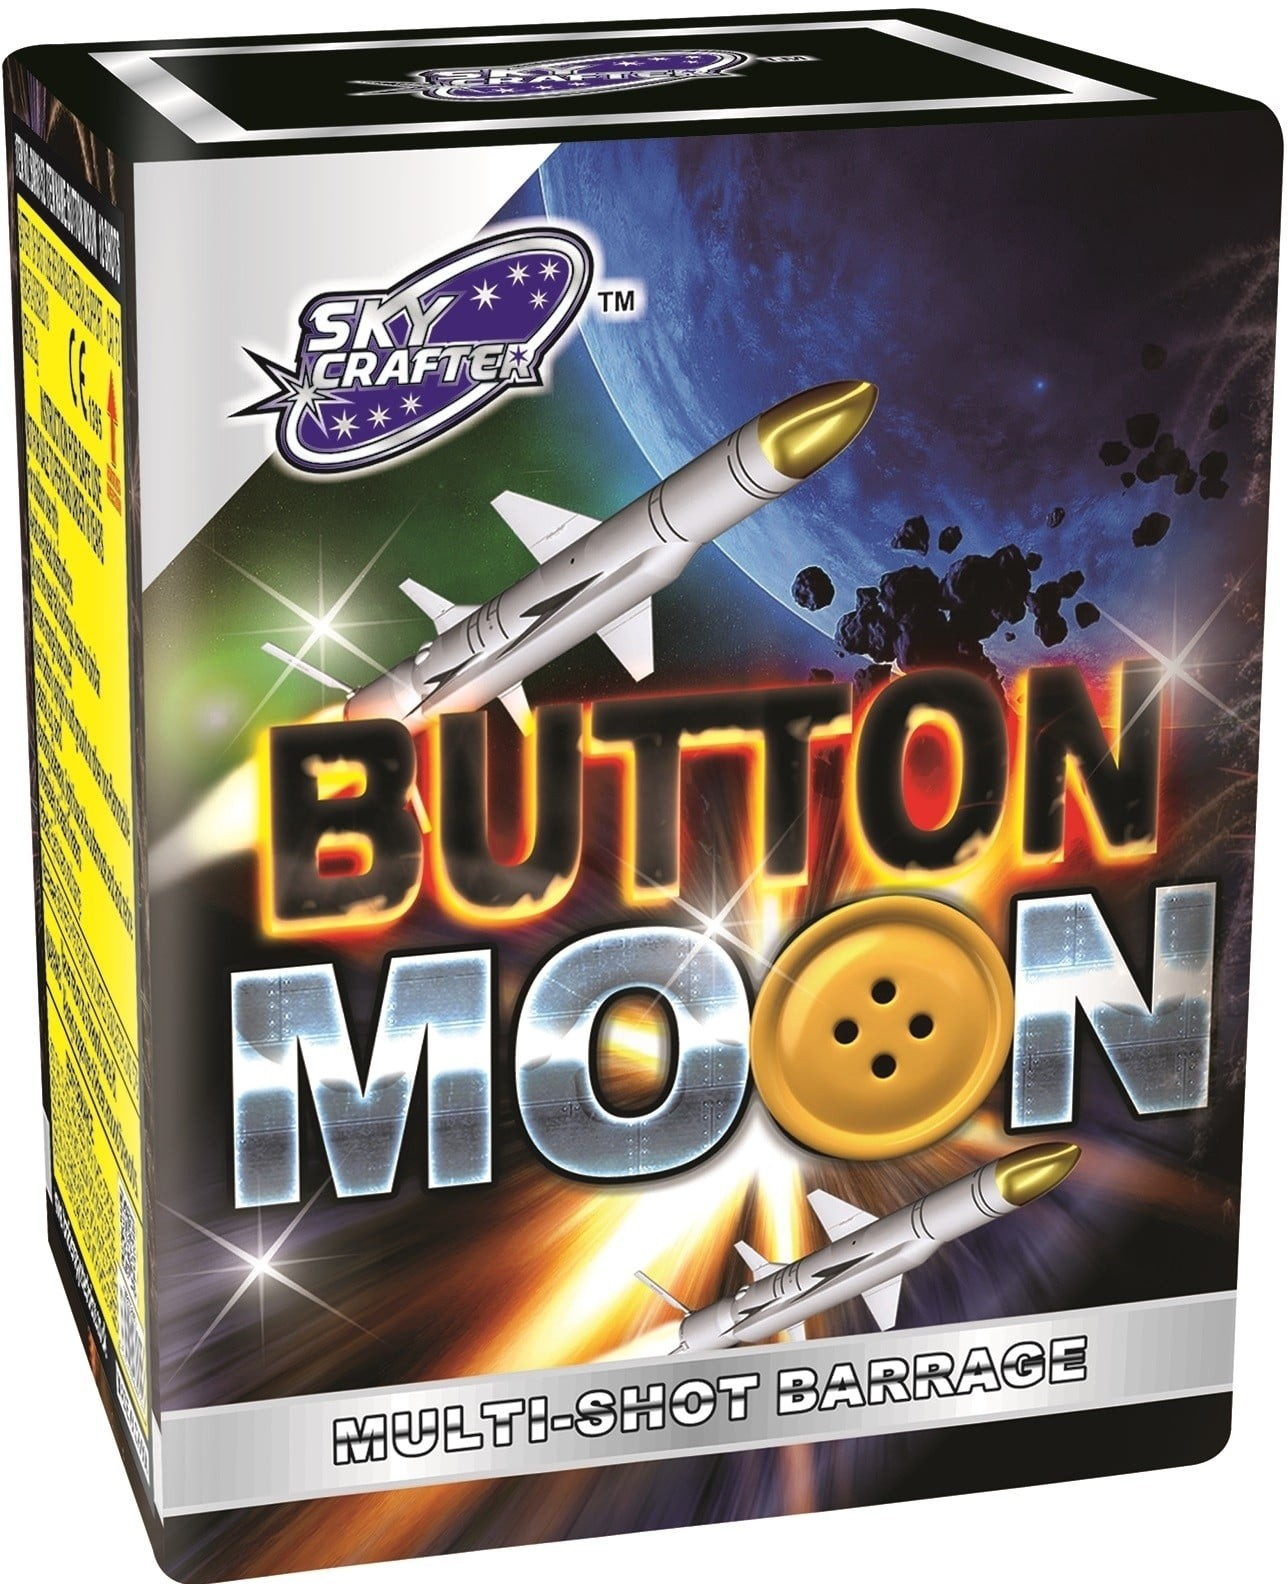 Button Moon by Skycrafter Fireworks